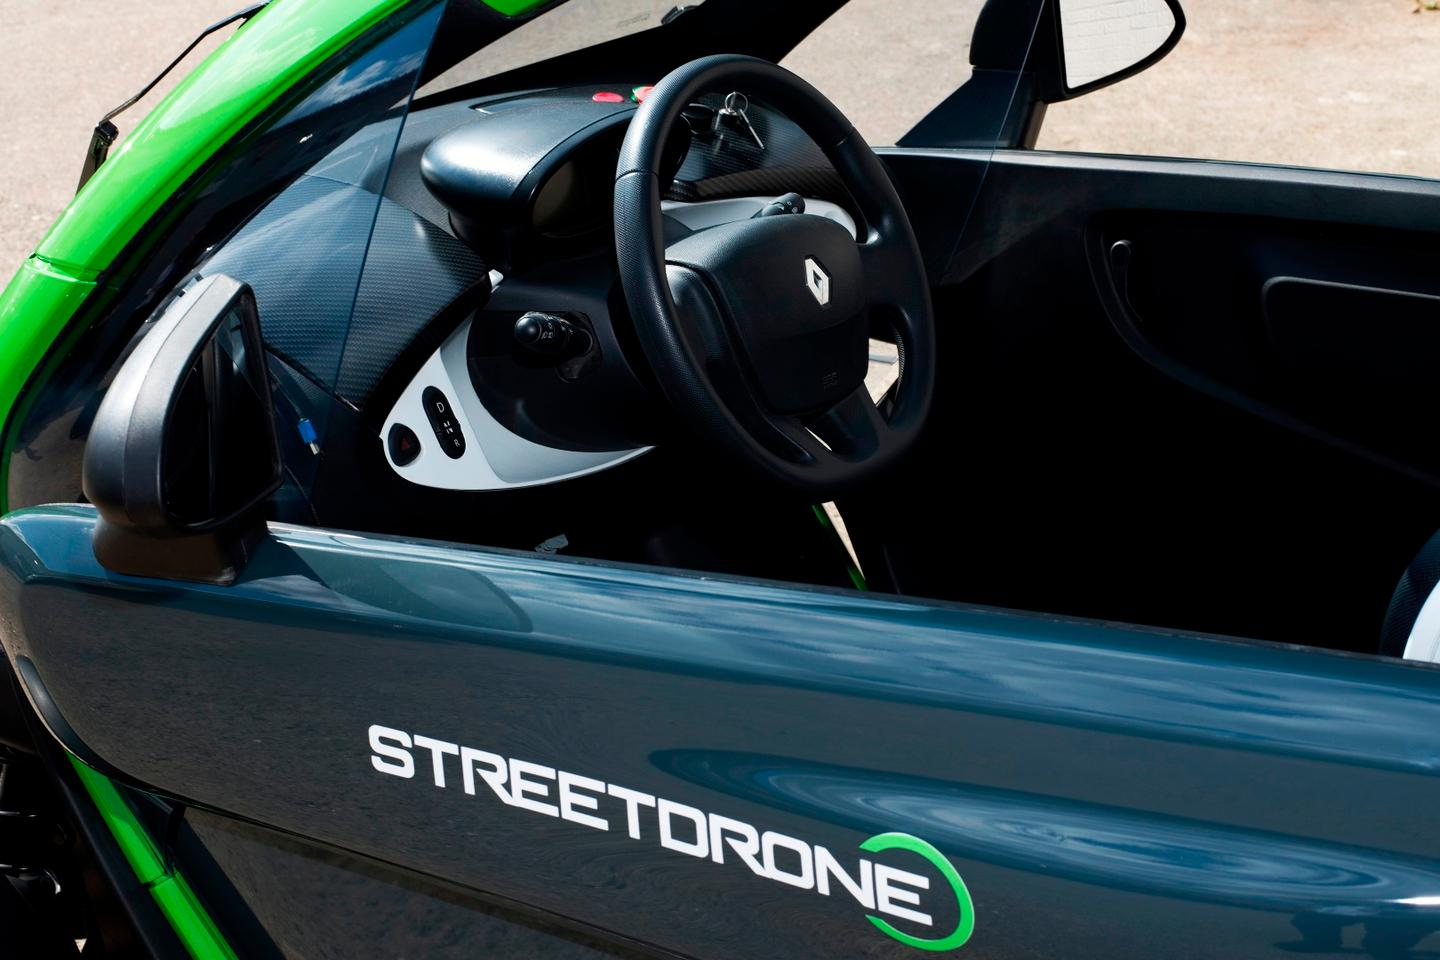 StreetDrone's kitted-out Renault Twizy